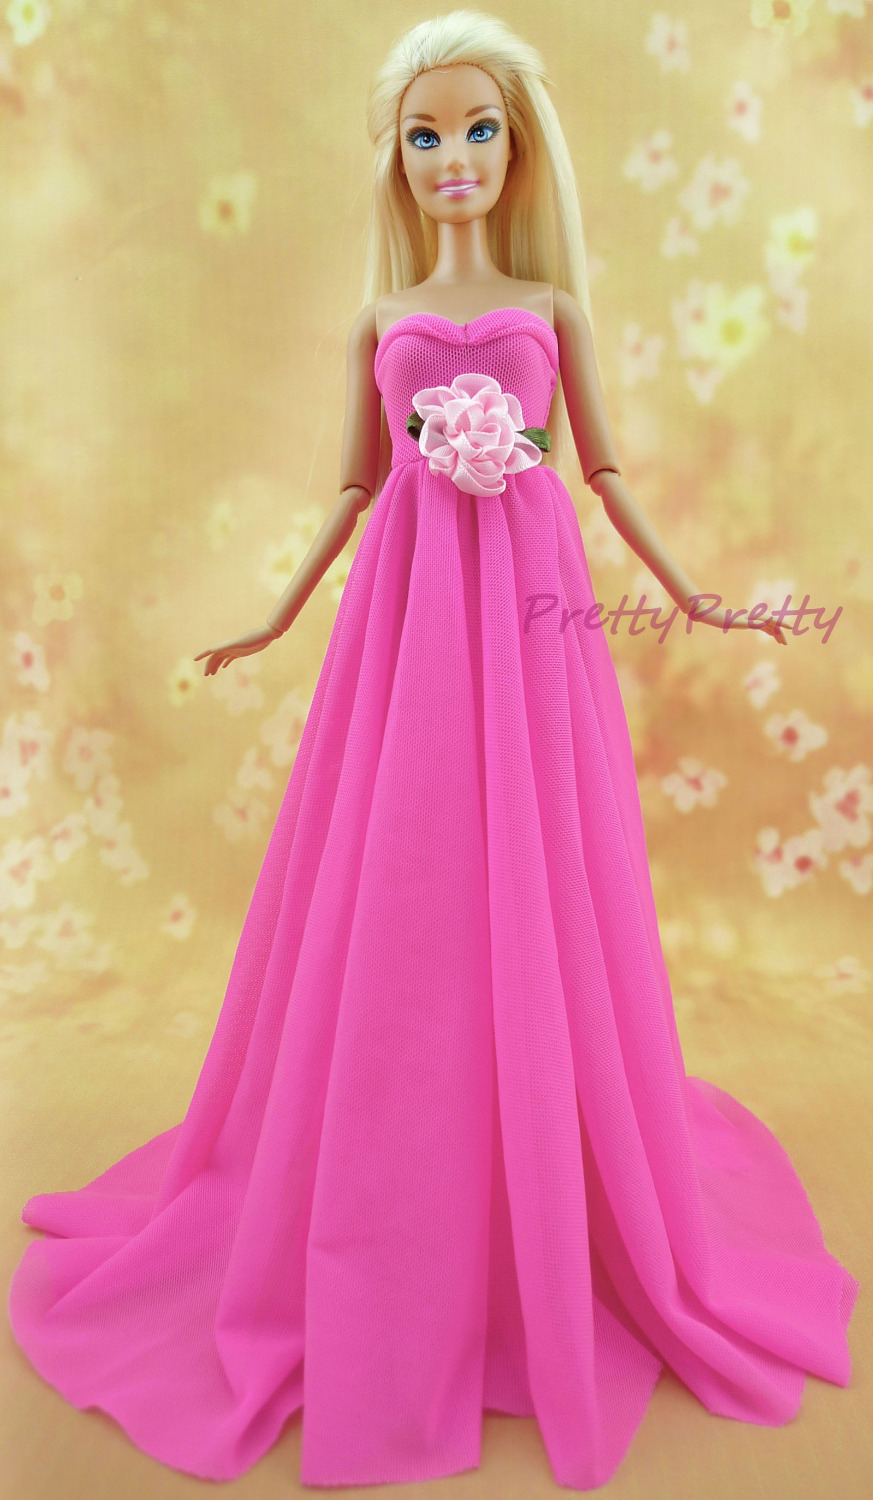 Handmade Pink Dress Wedding Party Gown Beautiful Strapless Princess Skirt Clothes For Barbie Doll Accessories Girls Gift Toy